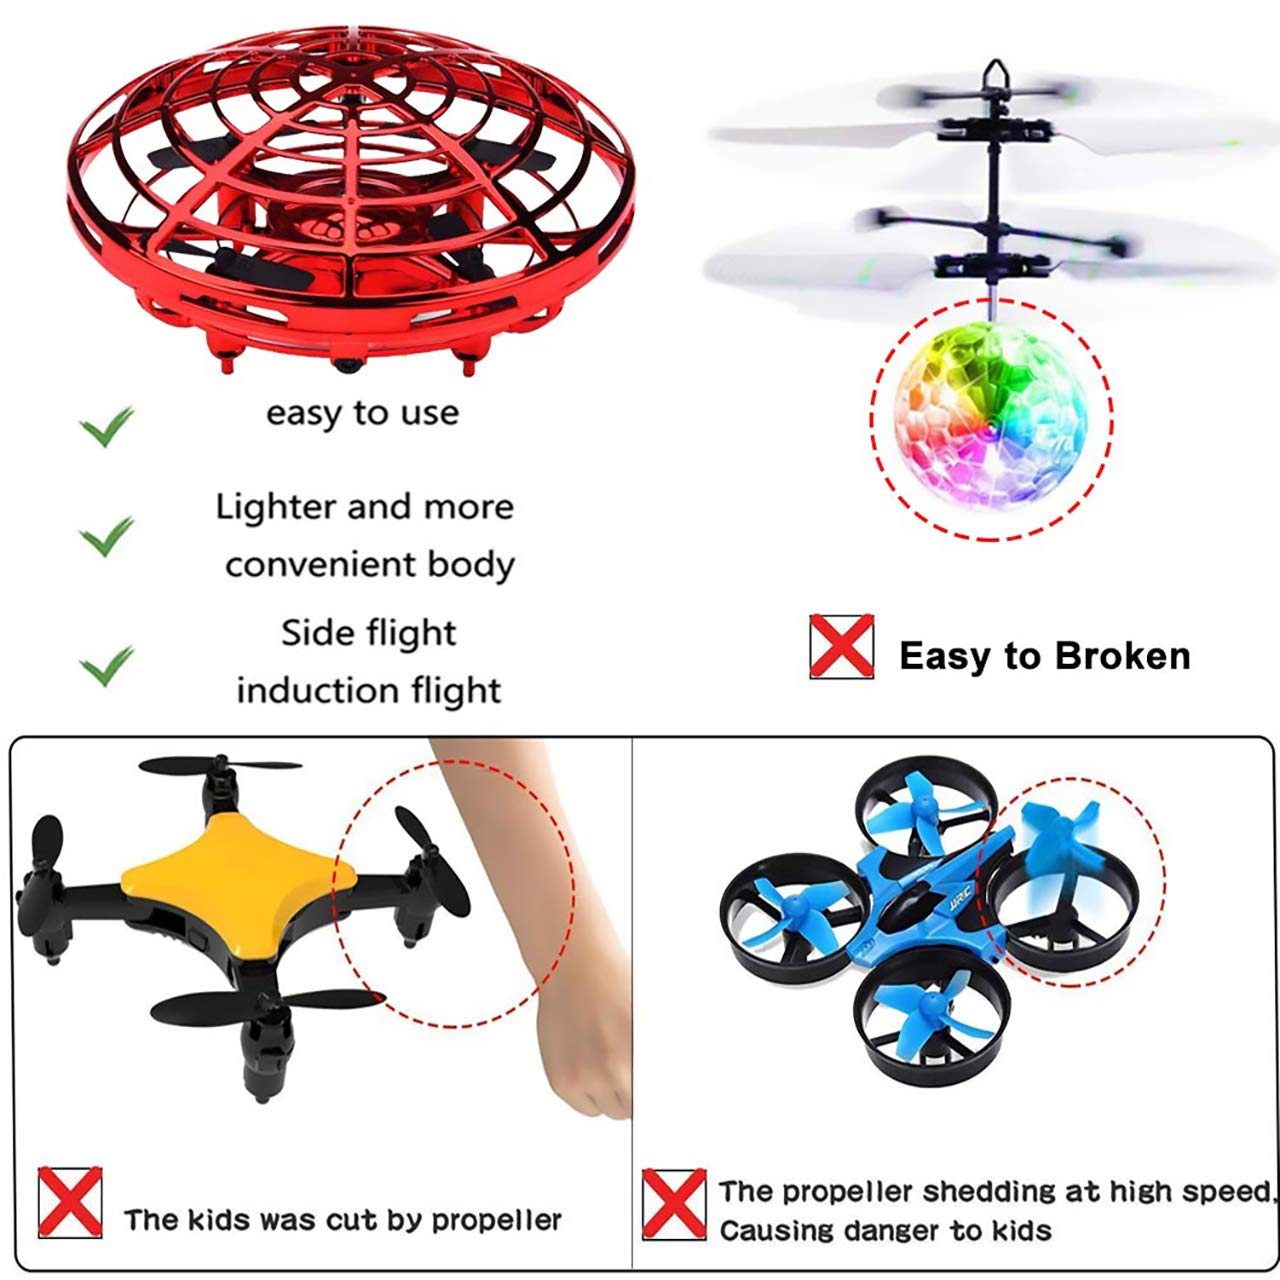 MuD-A Flying Ball Toy Drones,Hand Operated Drones for Kids or Adults - Scoot Flying Ball Drone,with 360°Rotating and Flashing LED Lights Mini Drone,for Boys and Girls, Kids Gifts (Red) by MuD-A (Image #3)